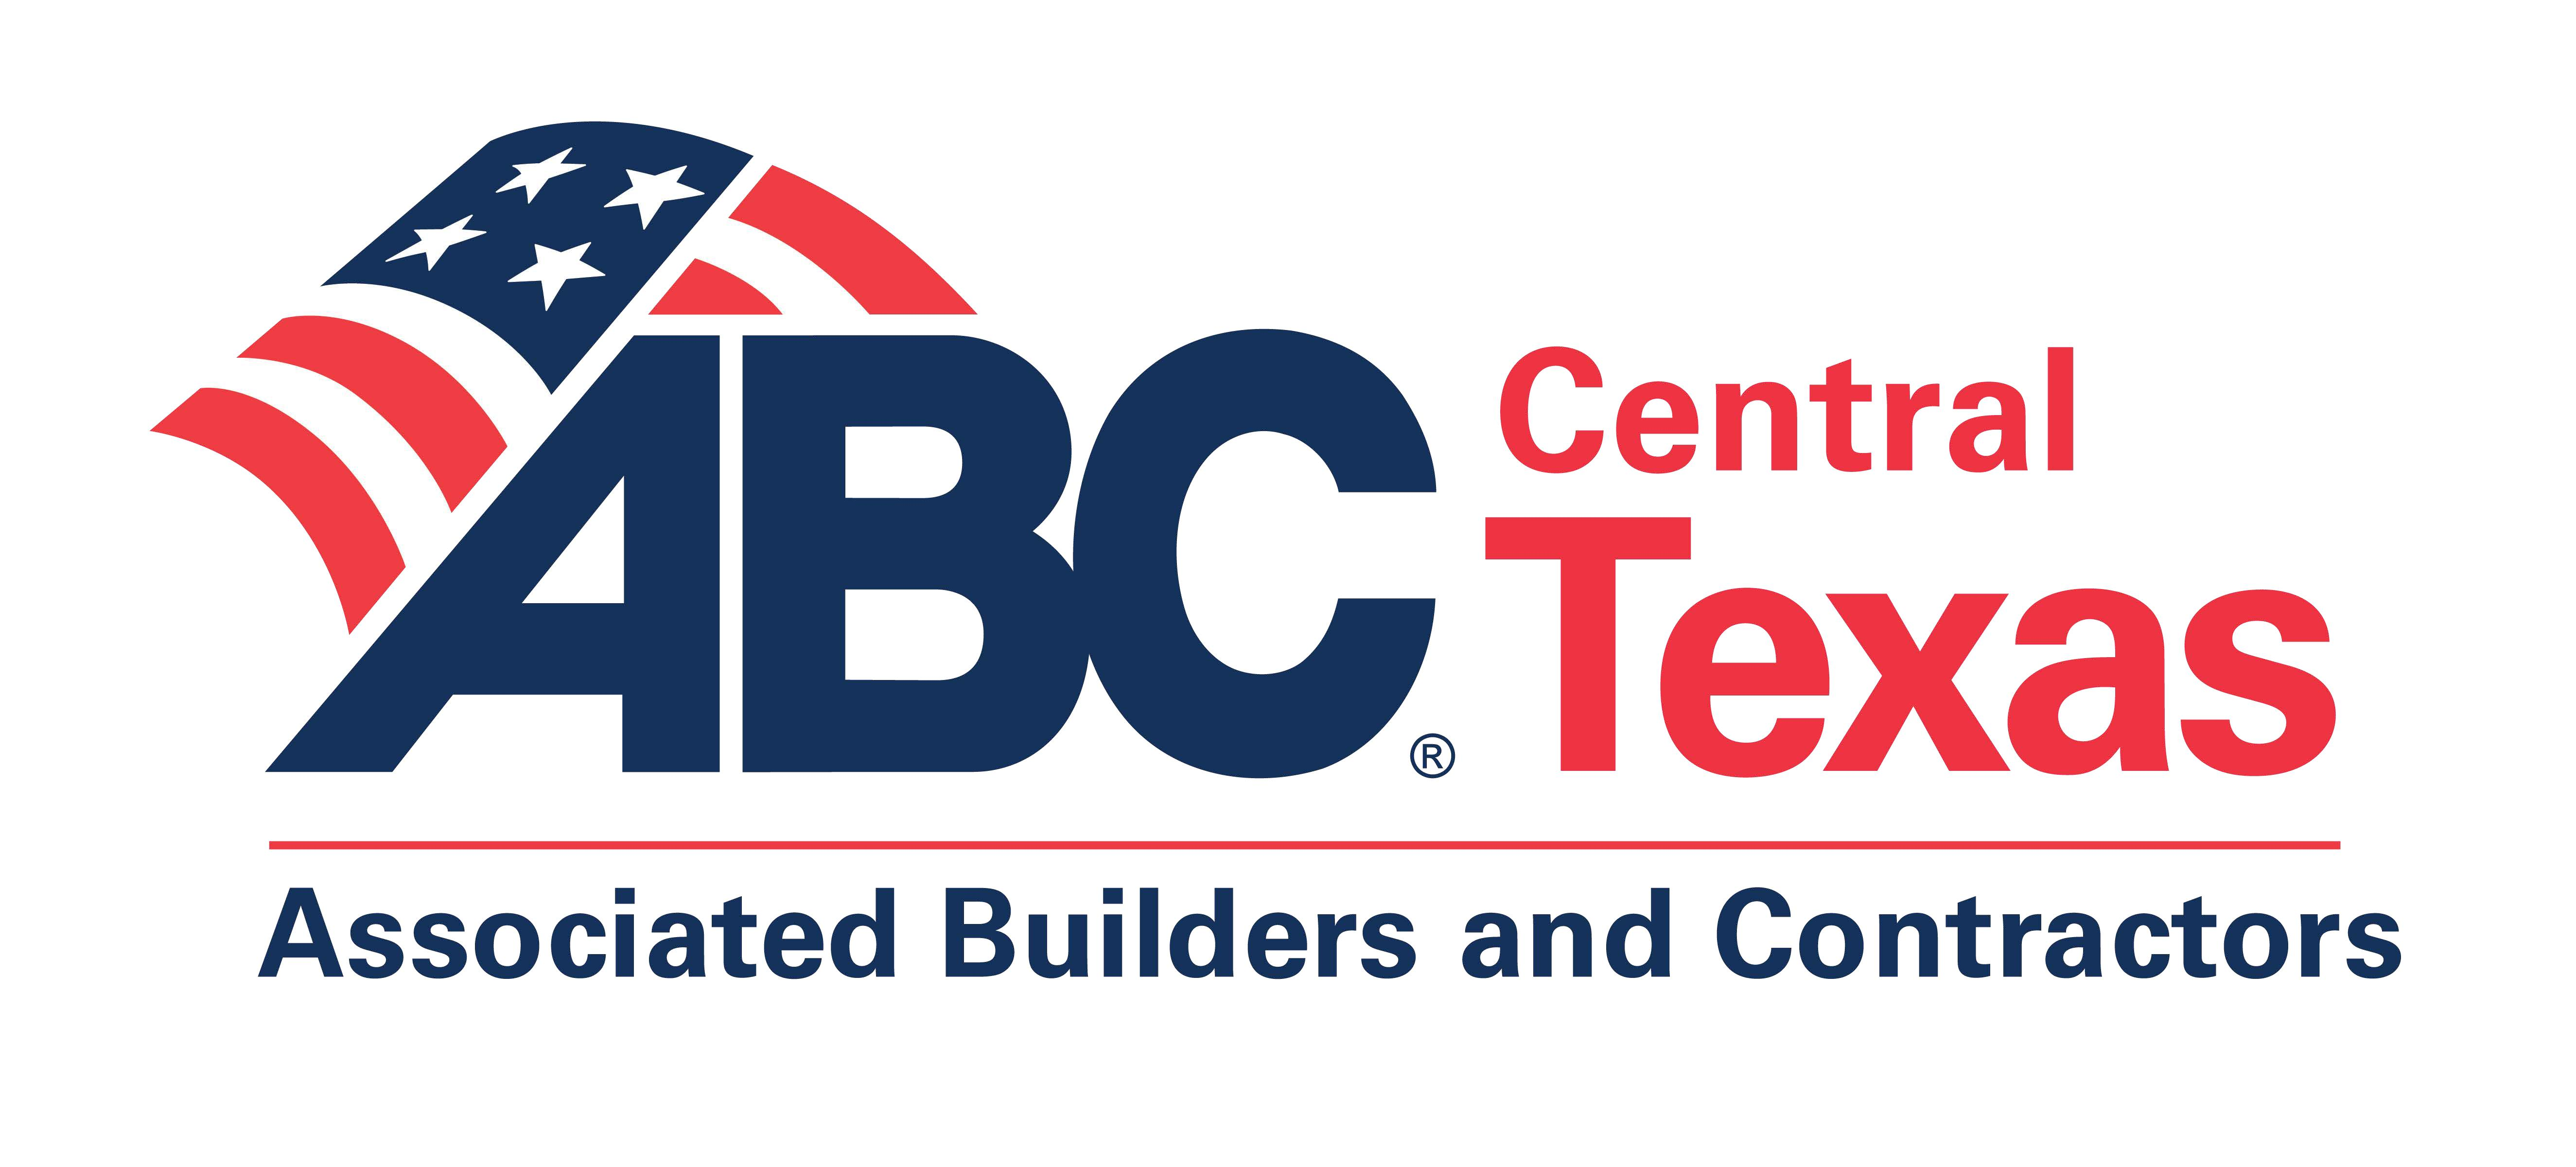 Associated Builders and Contractors - Central Texas Chapter